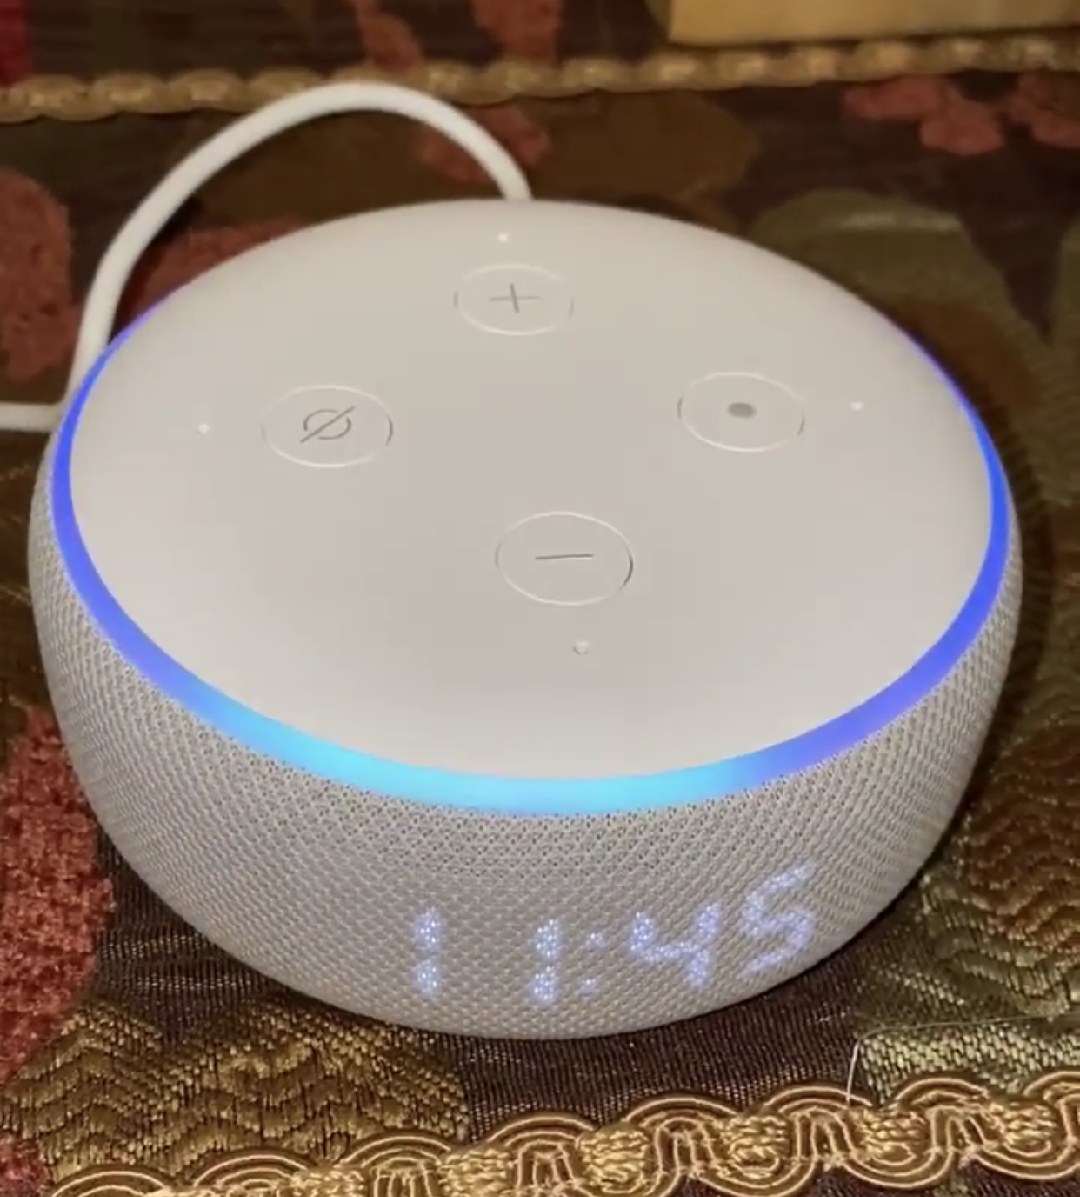 voice activated device